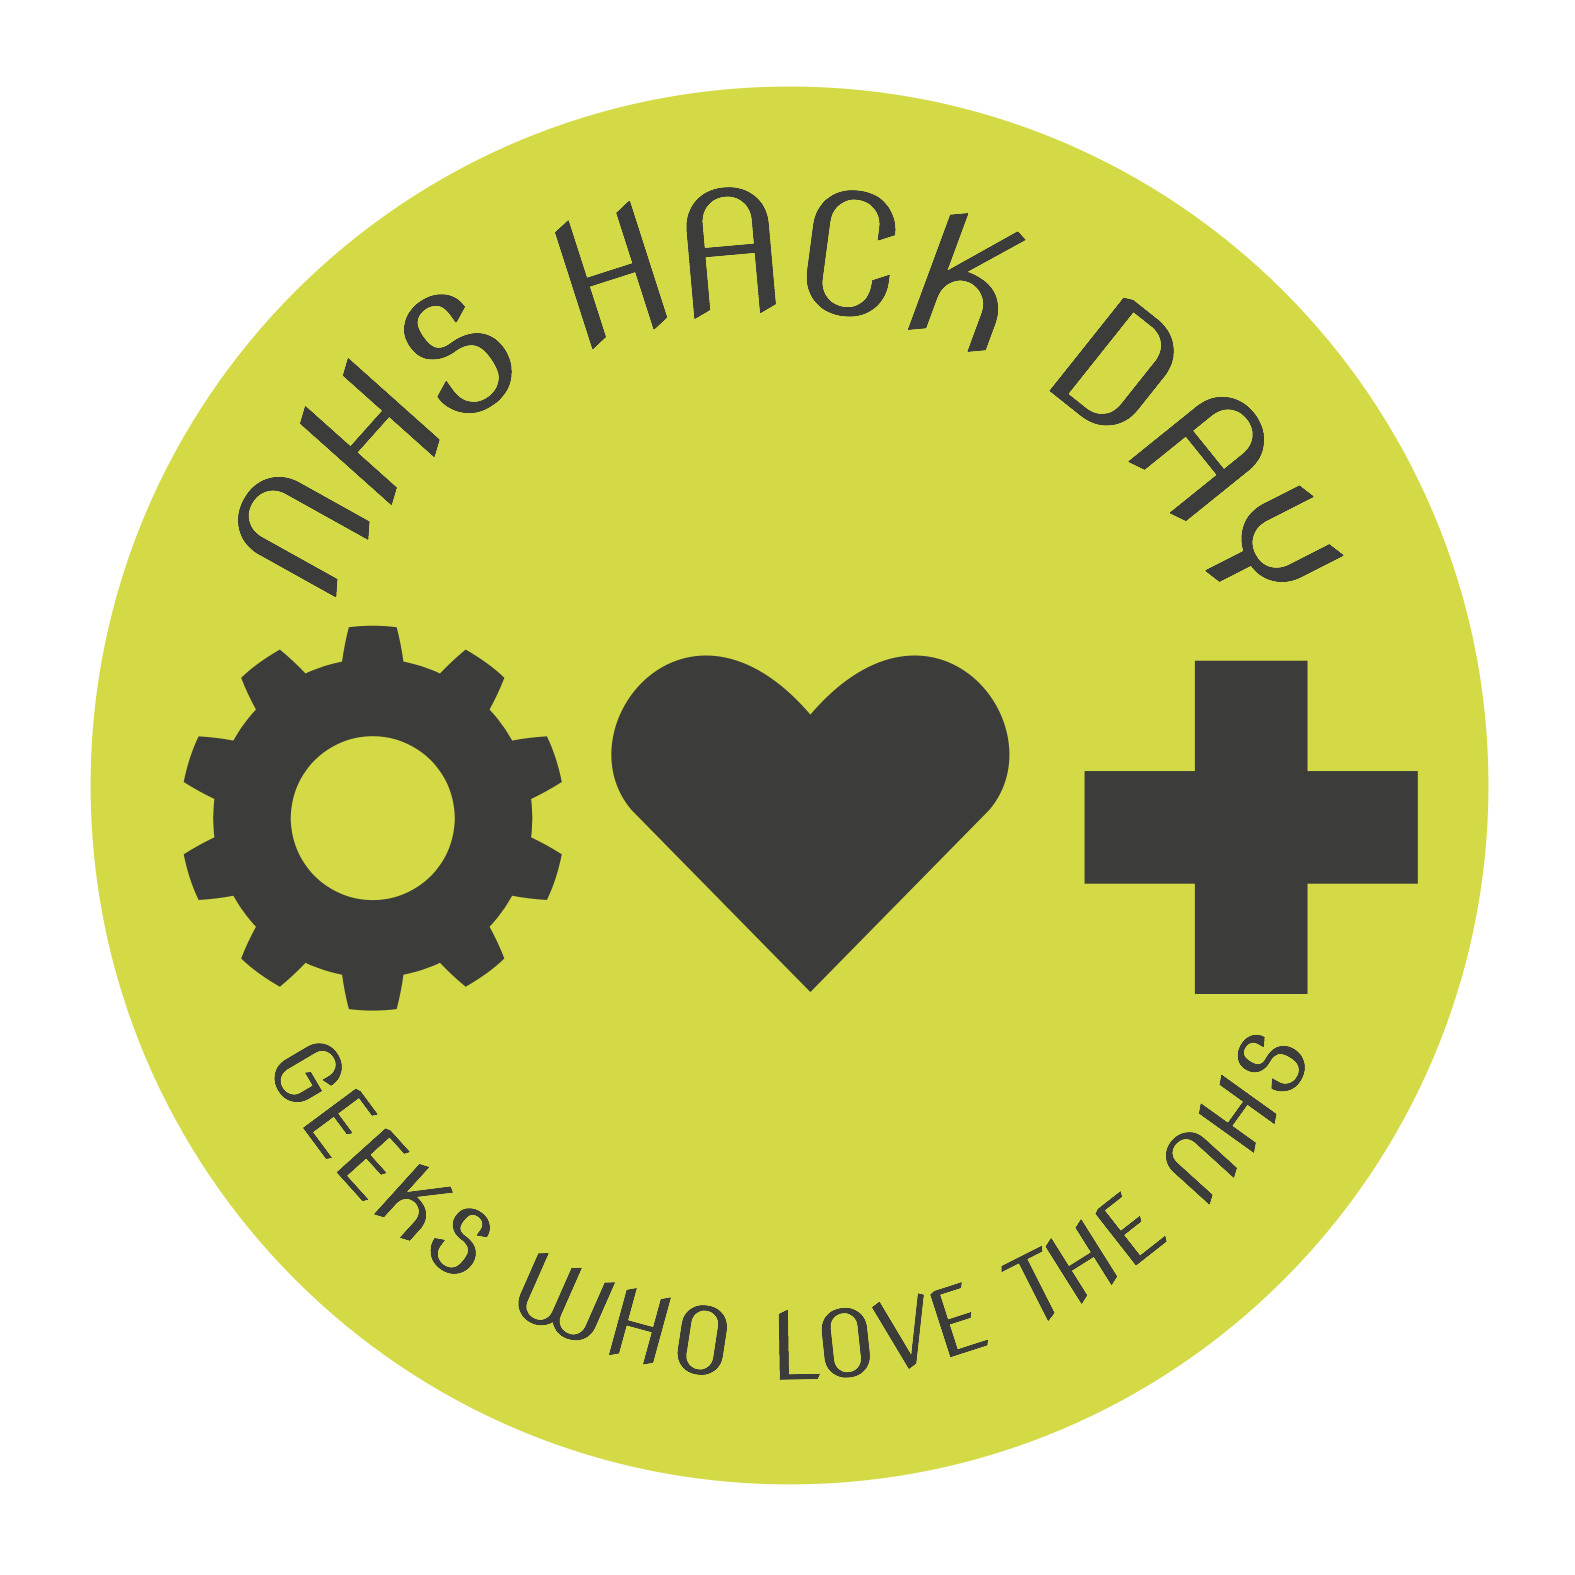 NHS Hack Day | Geeks who love the NHS - NHS Hack Day graphics